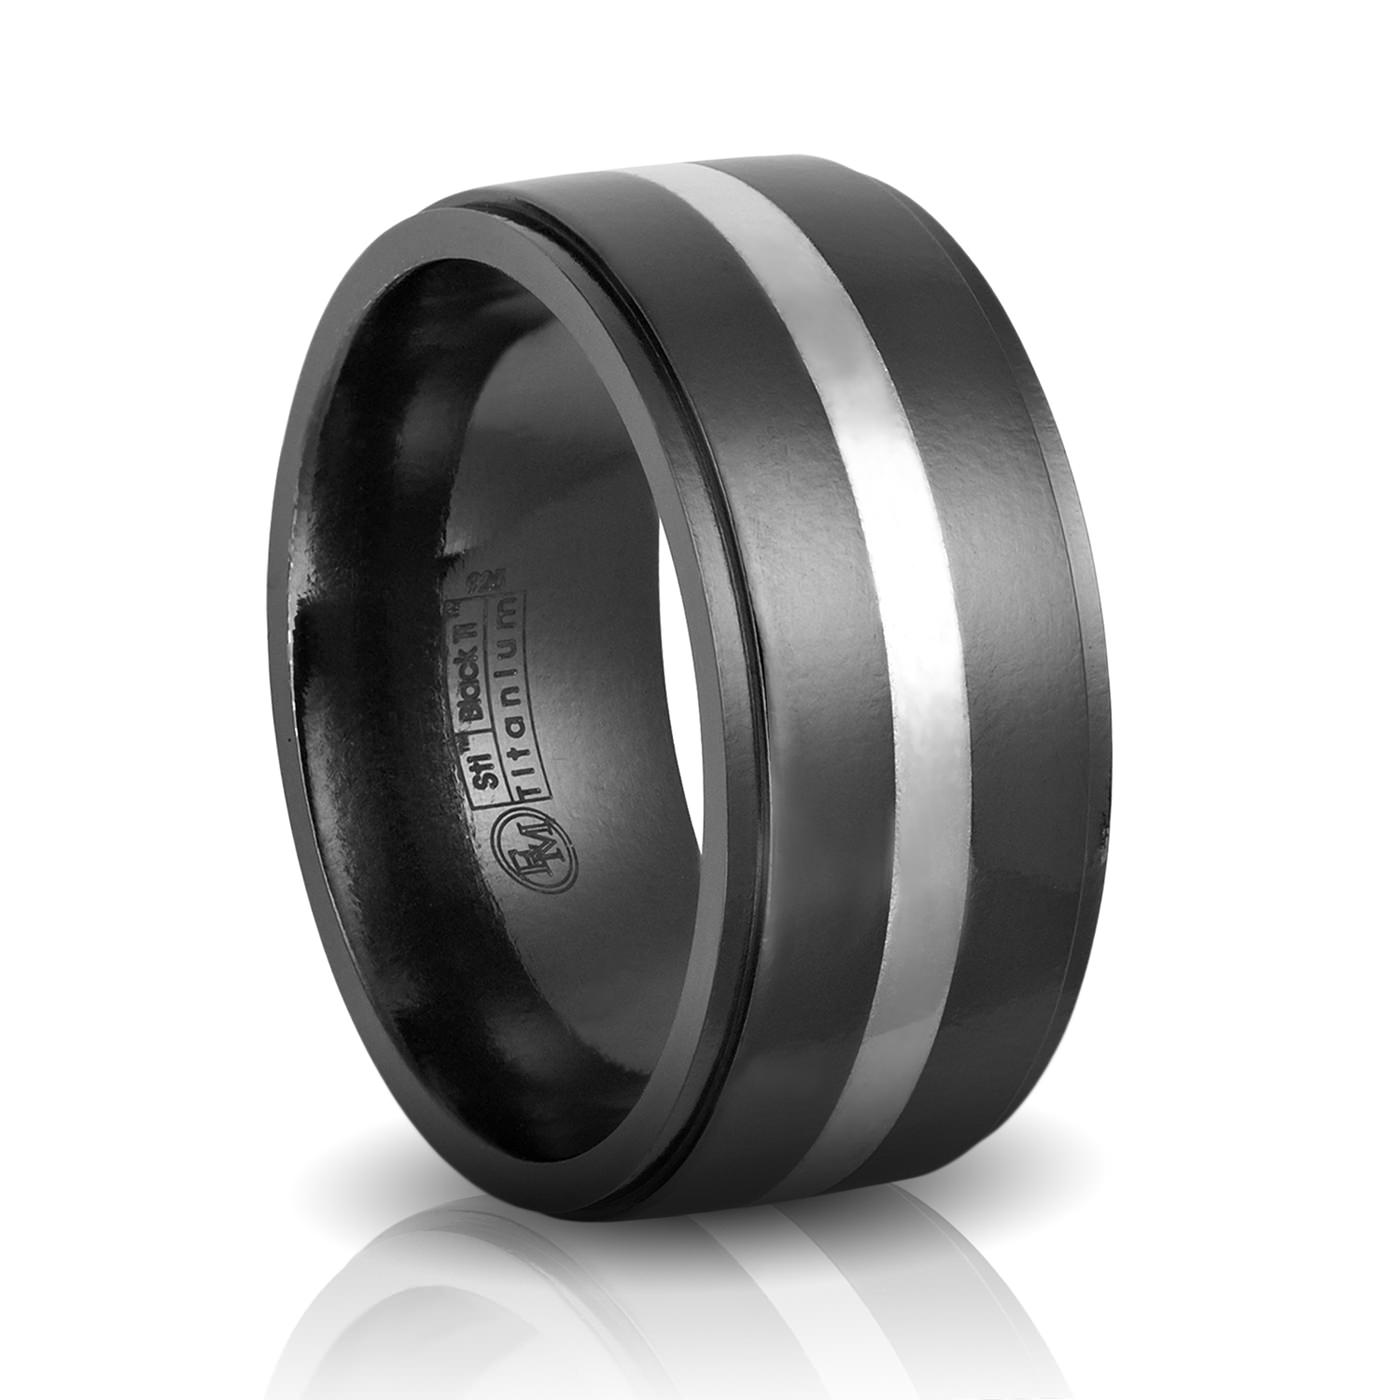 promise gift s boys rings wedding titanium men male jewelry quality mens engraved ring i engagement fashion product black high you bands band love products image